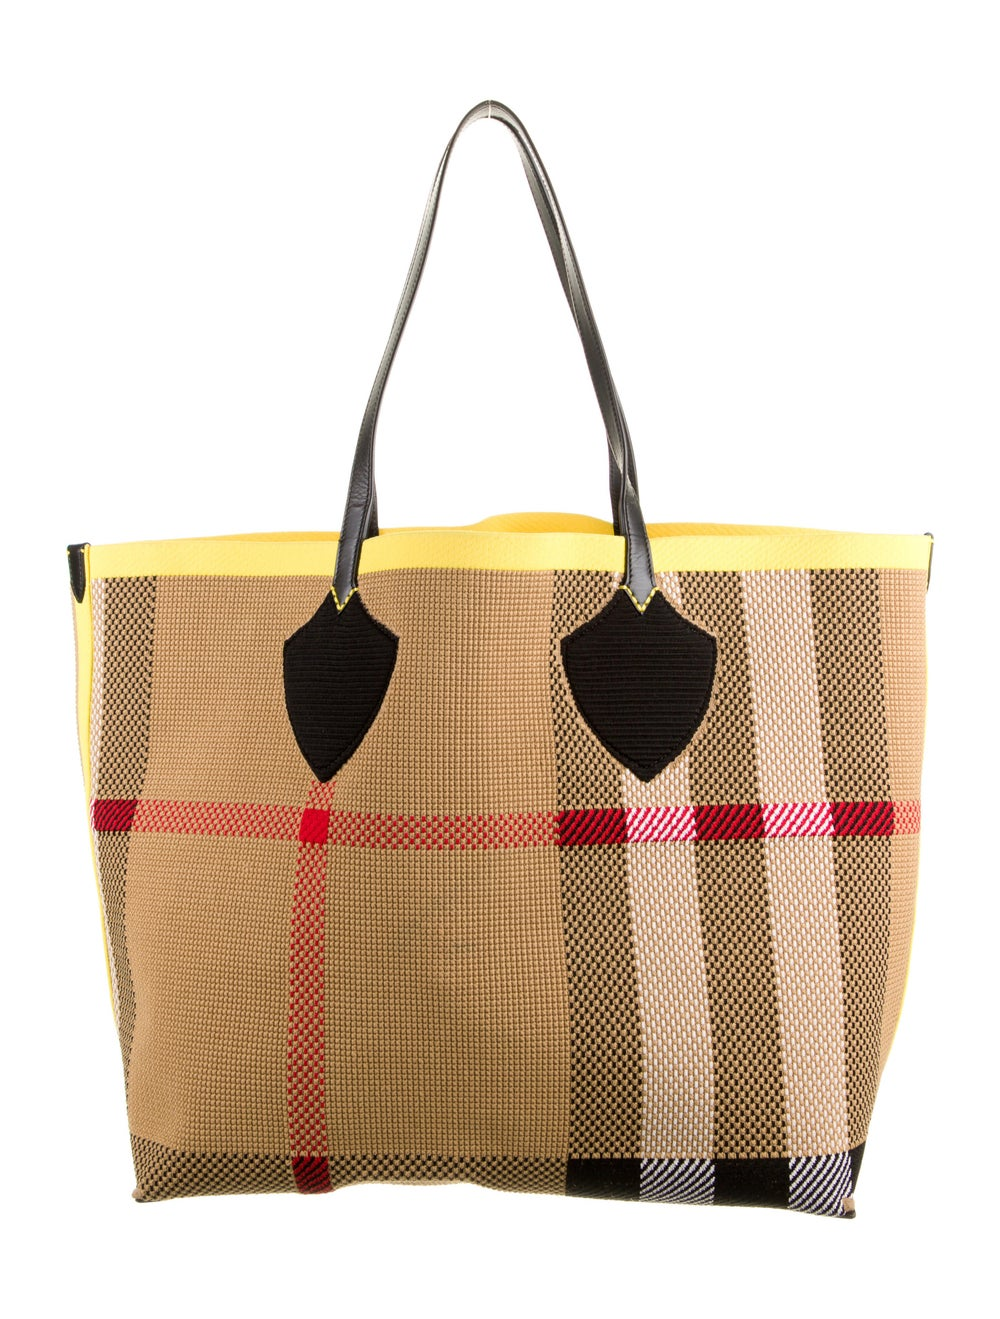 Burberry Large Logo Woven Tote - image 4